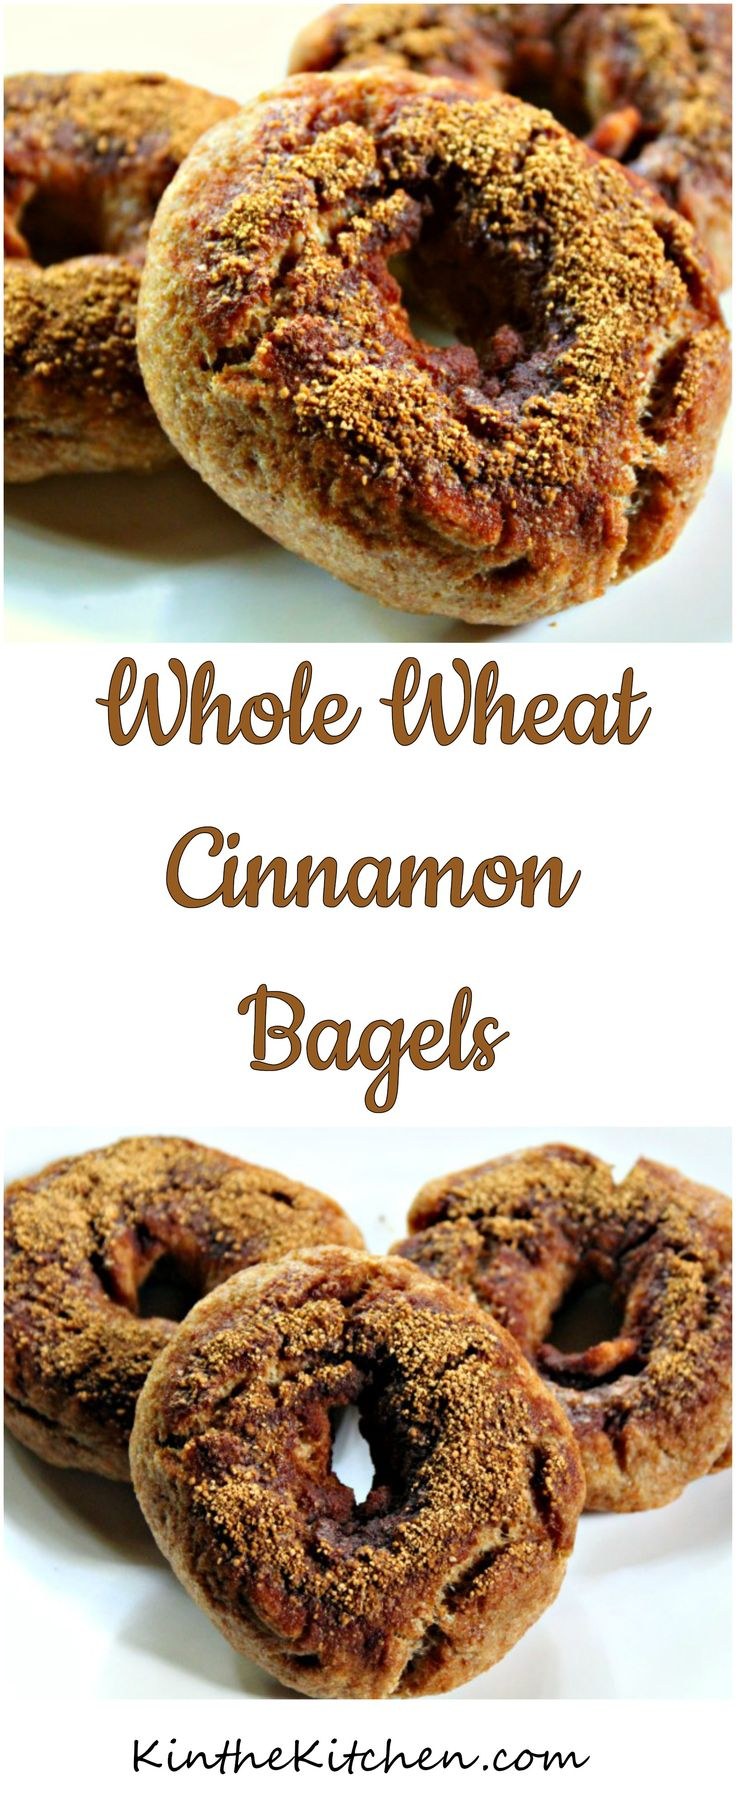 Made with whole wheat flour and containing no refined sugar, these Cinnamon Bagels also have a little almond flour for added protein and make for a filling breakfast.